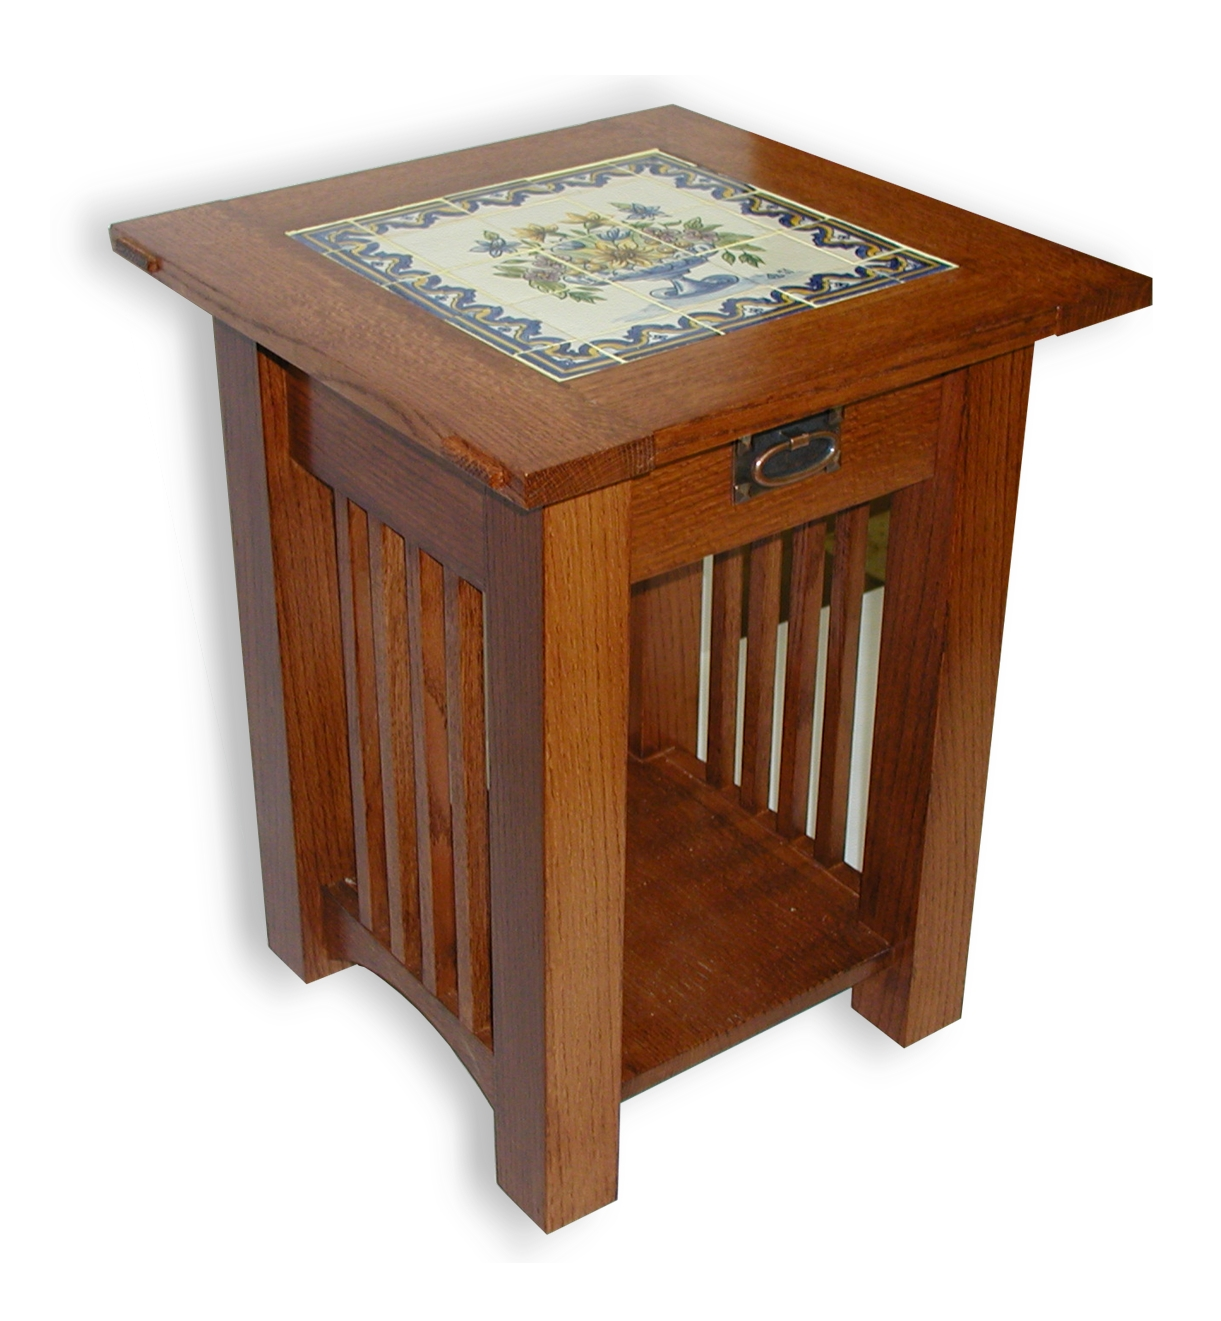 Custom Made Mission Style Tile Top End Table